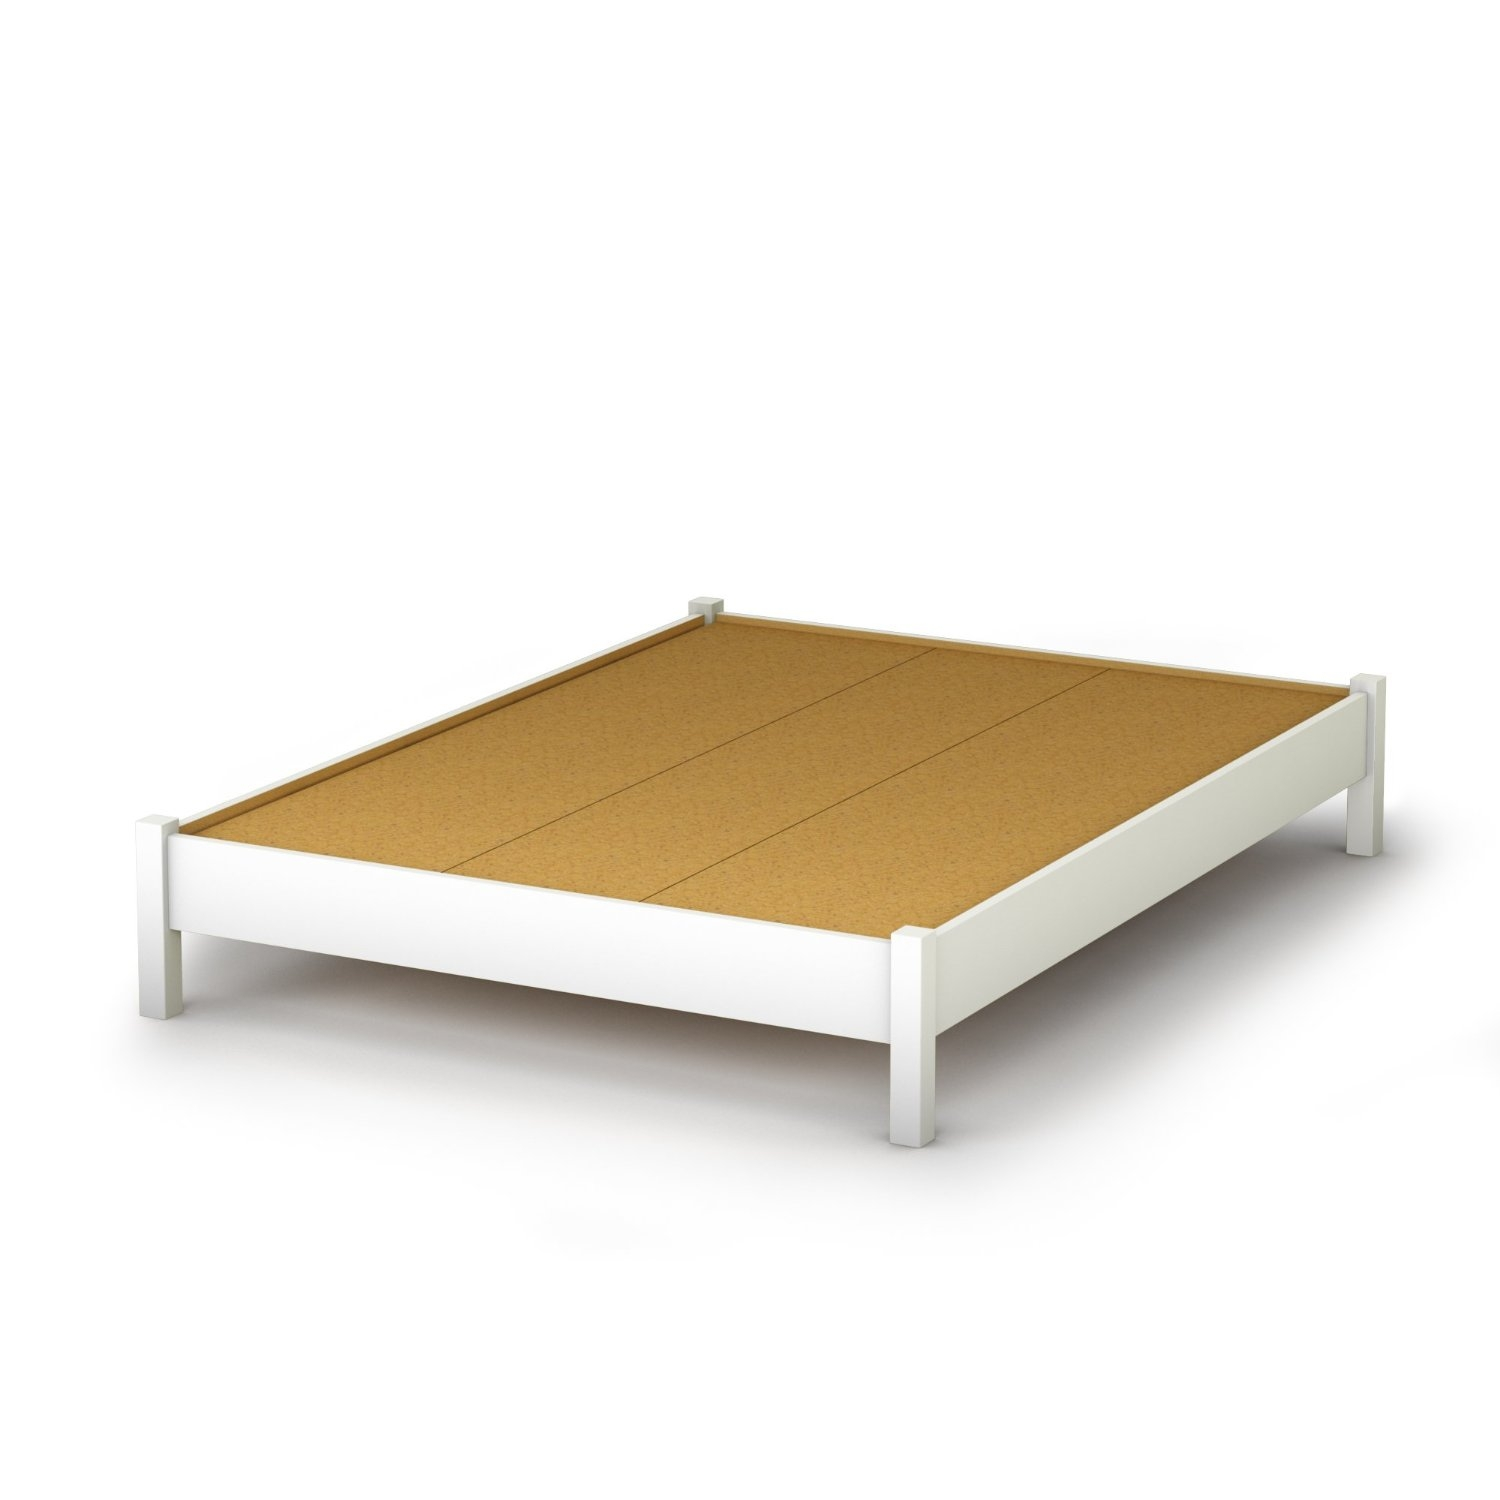 full size simple platform bed in white finish  modern design  - full size simple platform bed in white finish  modern design